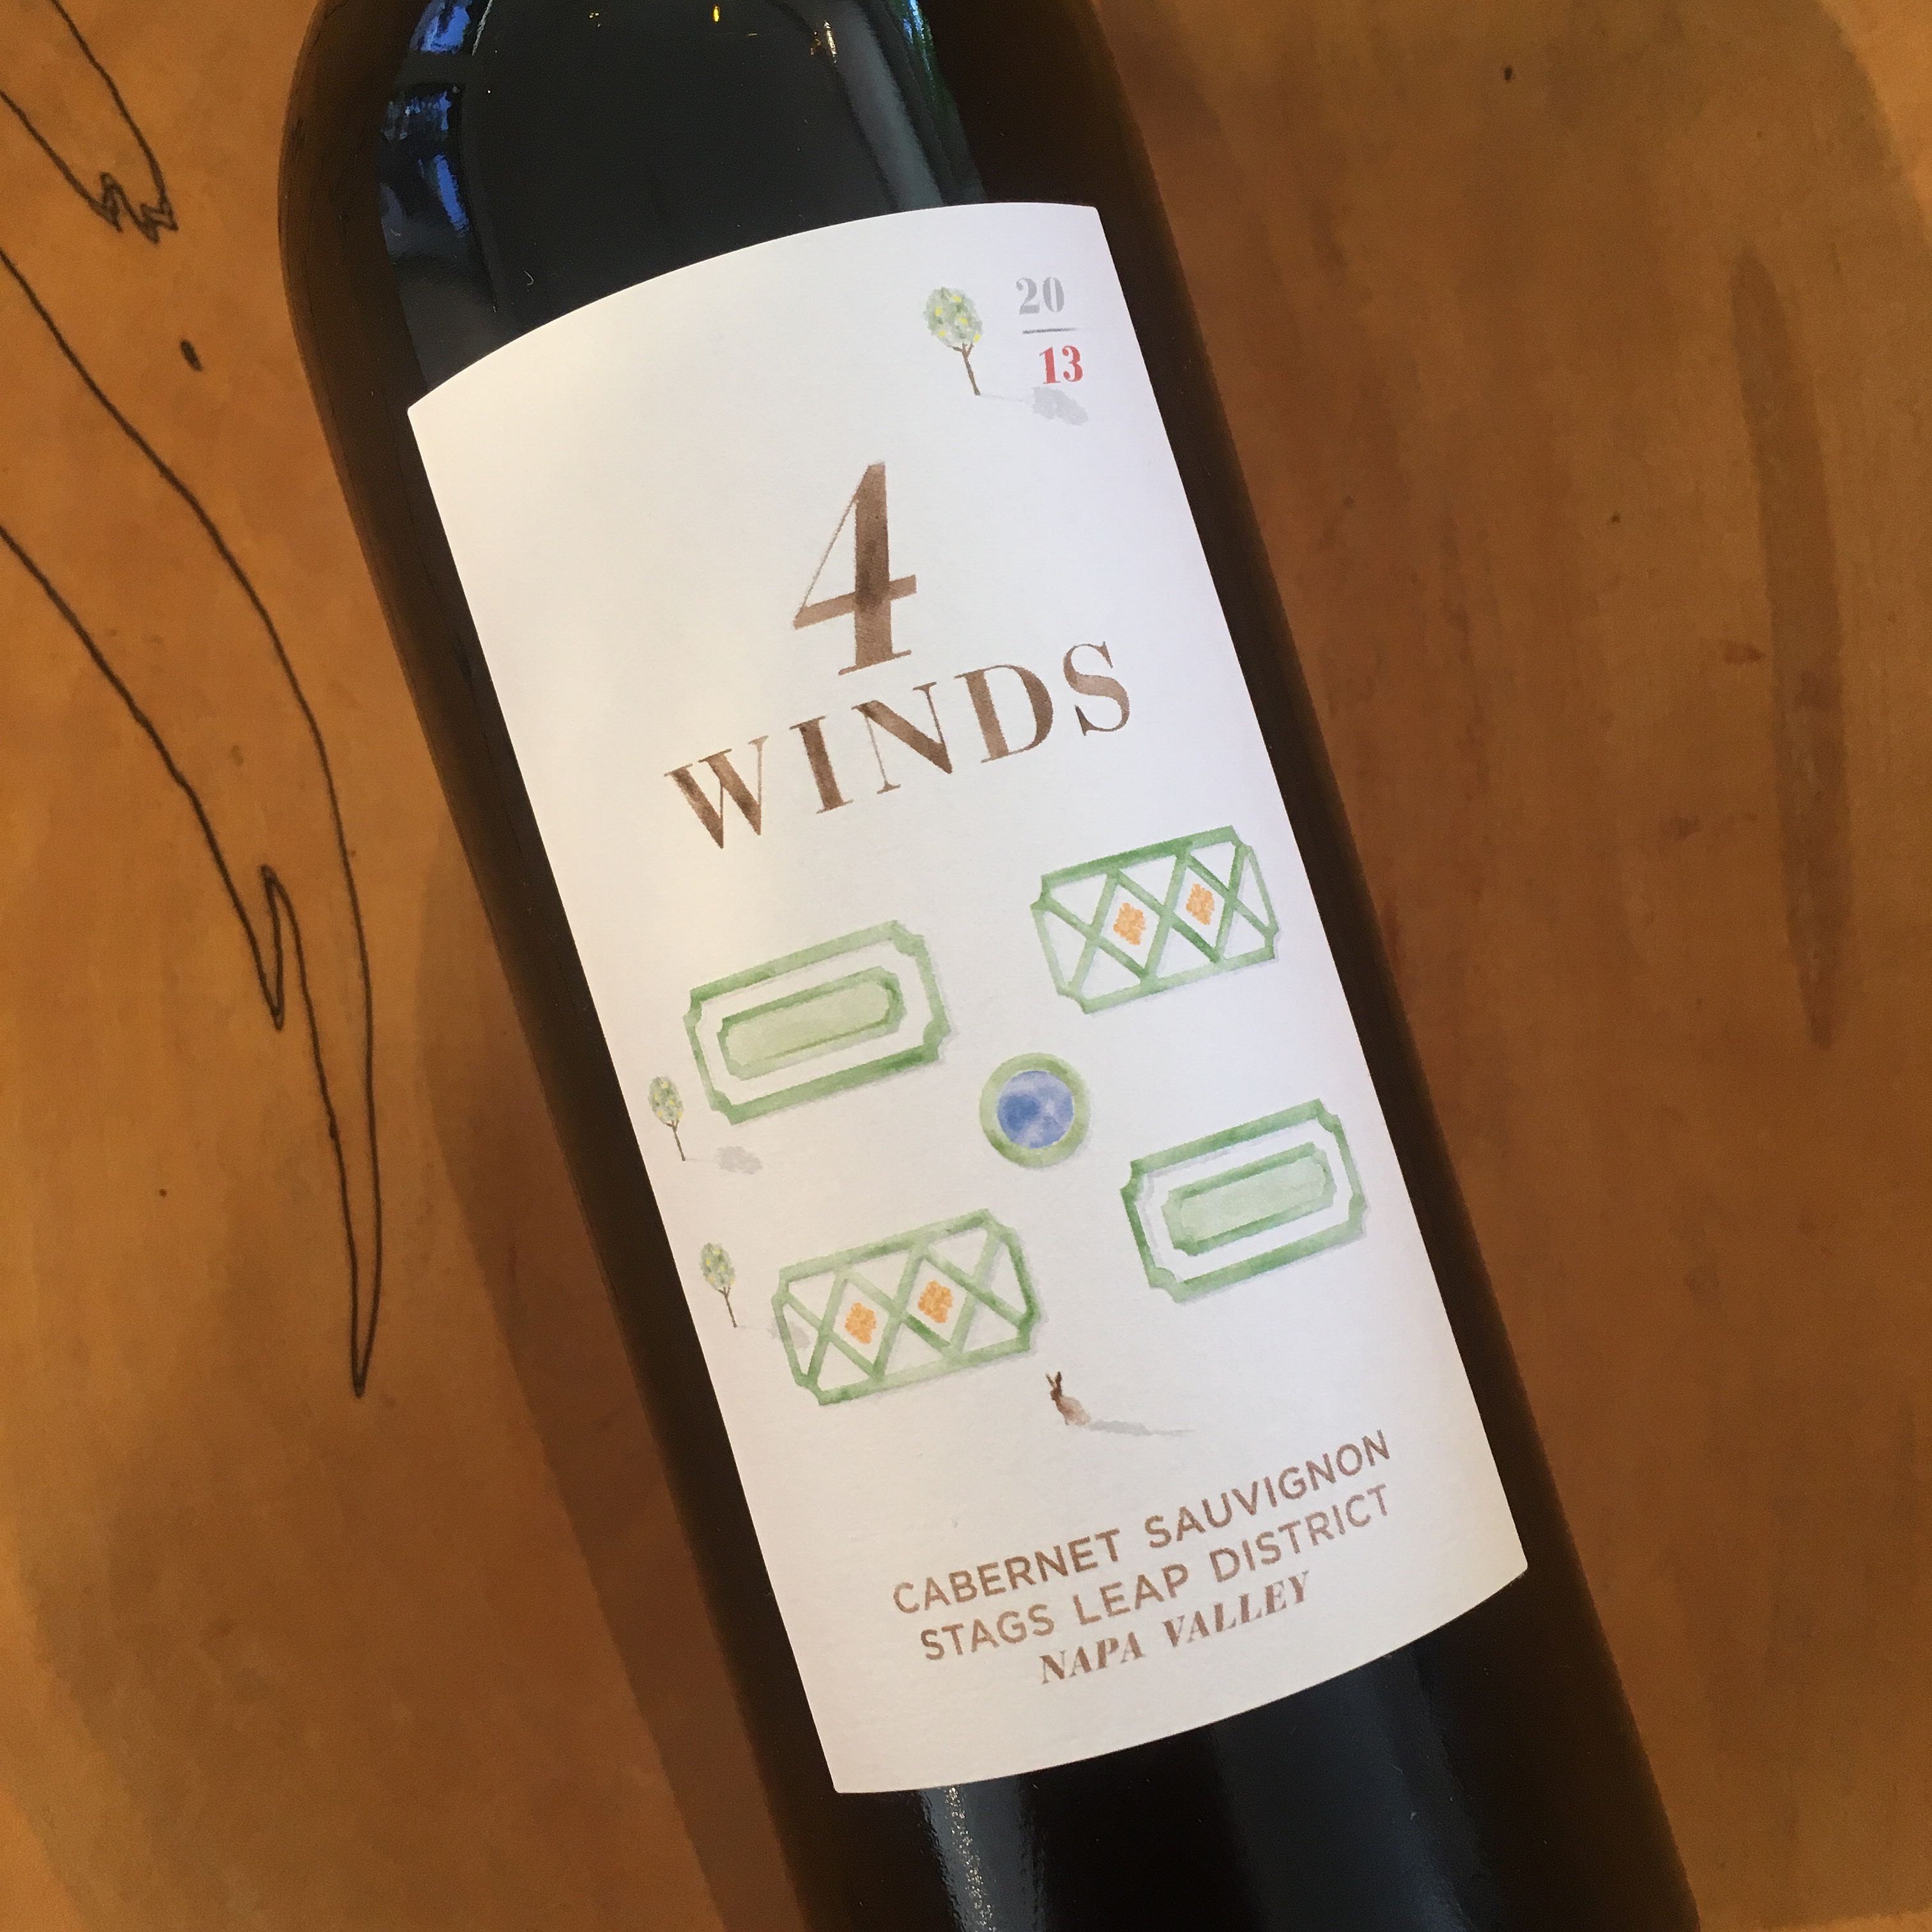 4 Winds Cabernet Sauvignon 2013 Stags Leap District - K. Laz Wine Collection